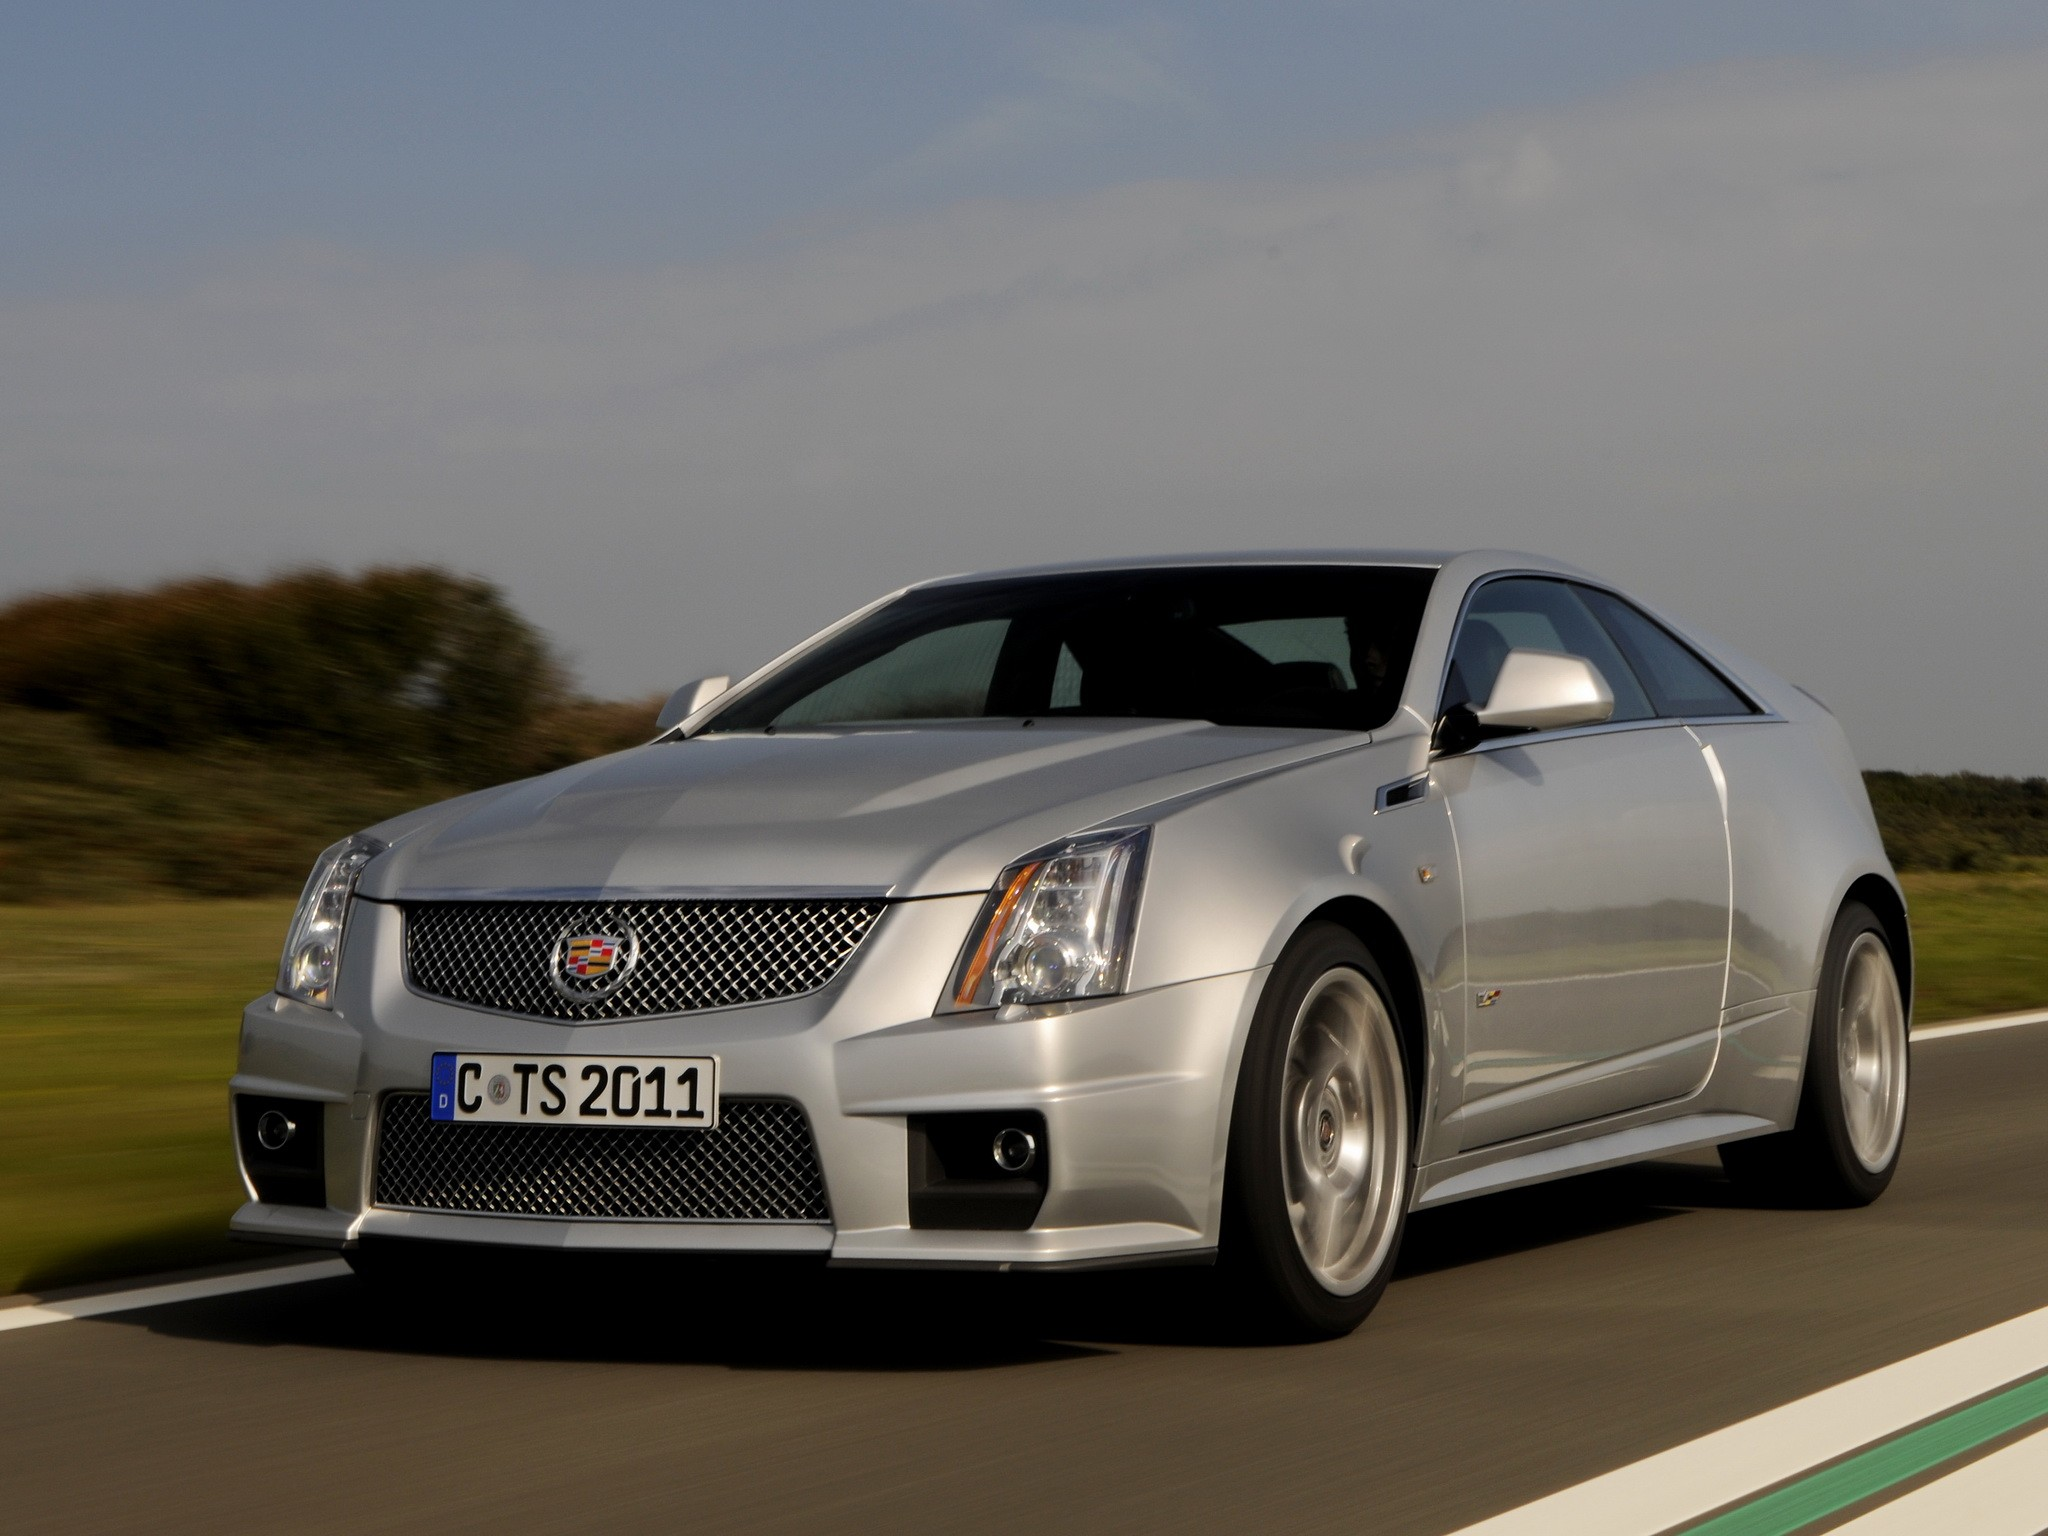 cadillac cts v coupe specs 2012 2013 2014 2015 2016 2017 2018 autoevolution. Black Bedroom Furniture Sets. Home Design Ideas